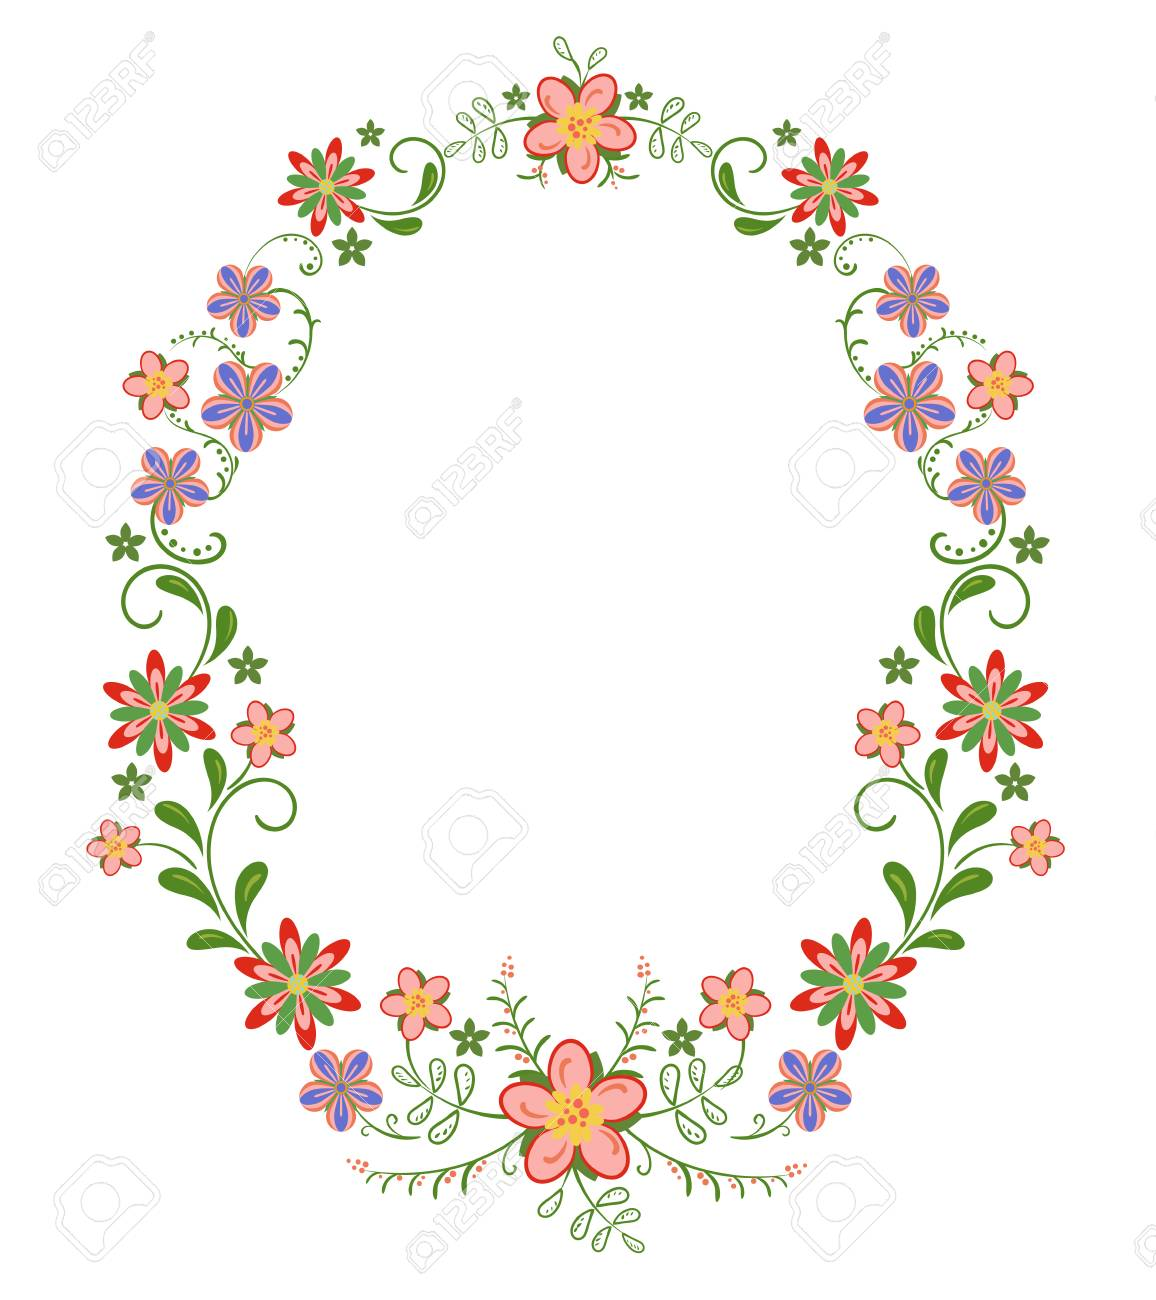 Decorative Vertical Oval Frame Vignette With Bright Simple Flowers Stock Vector